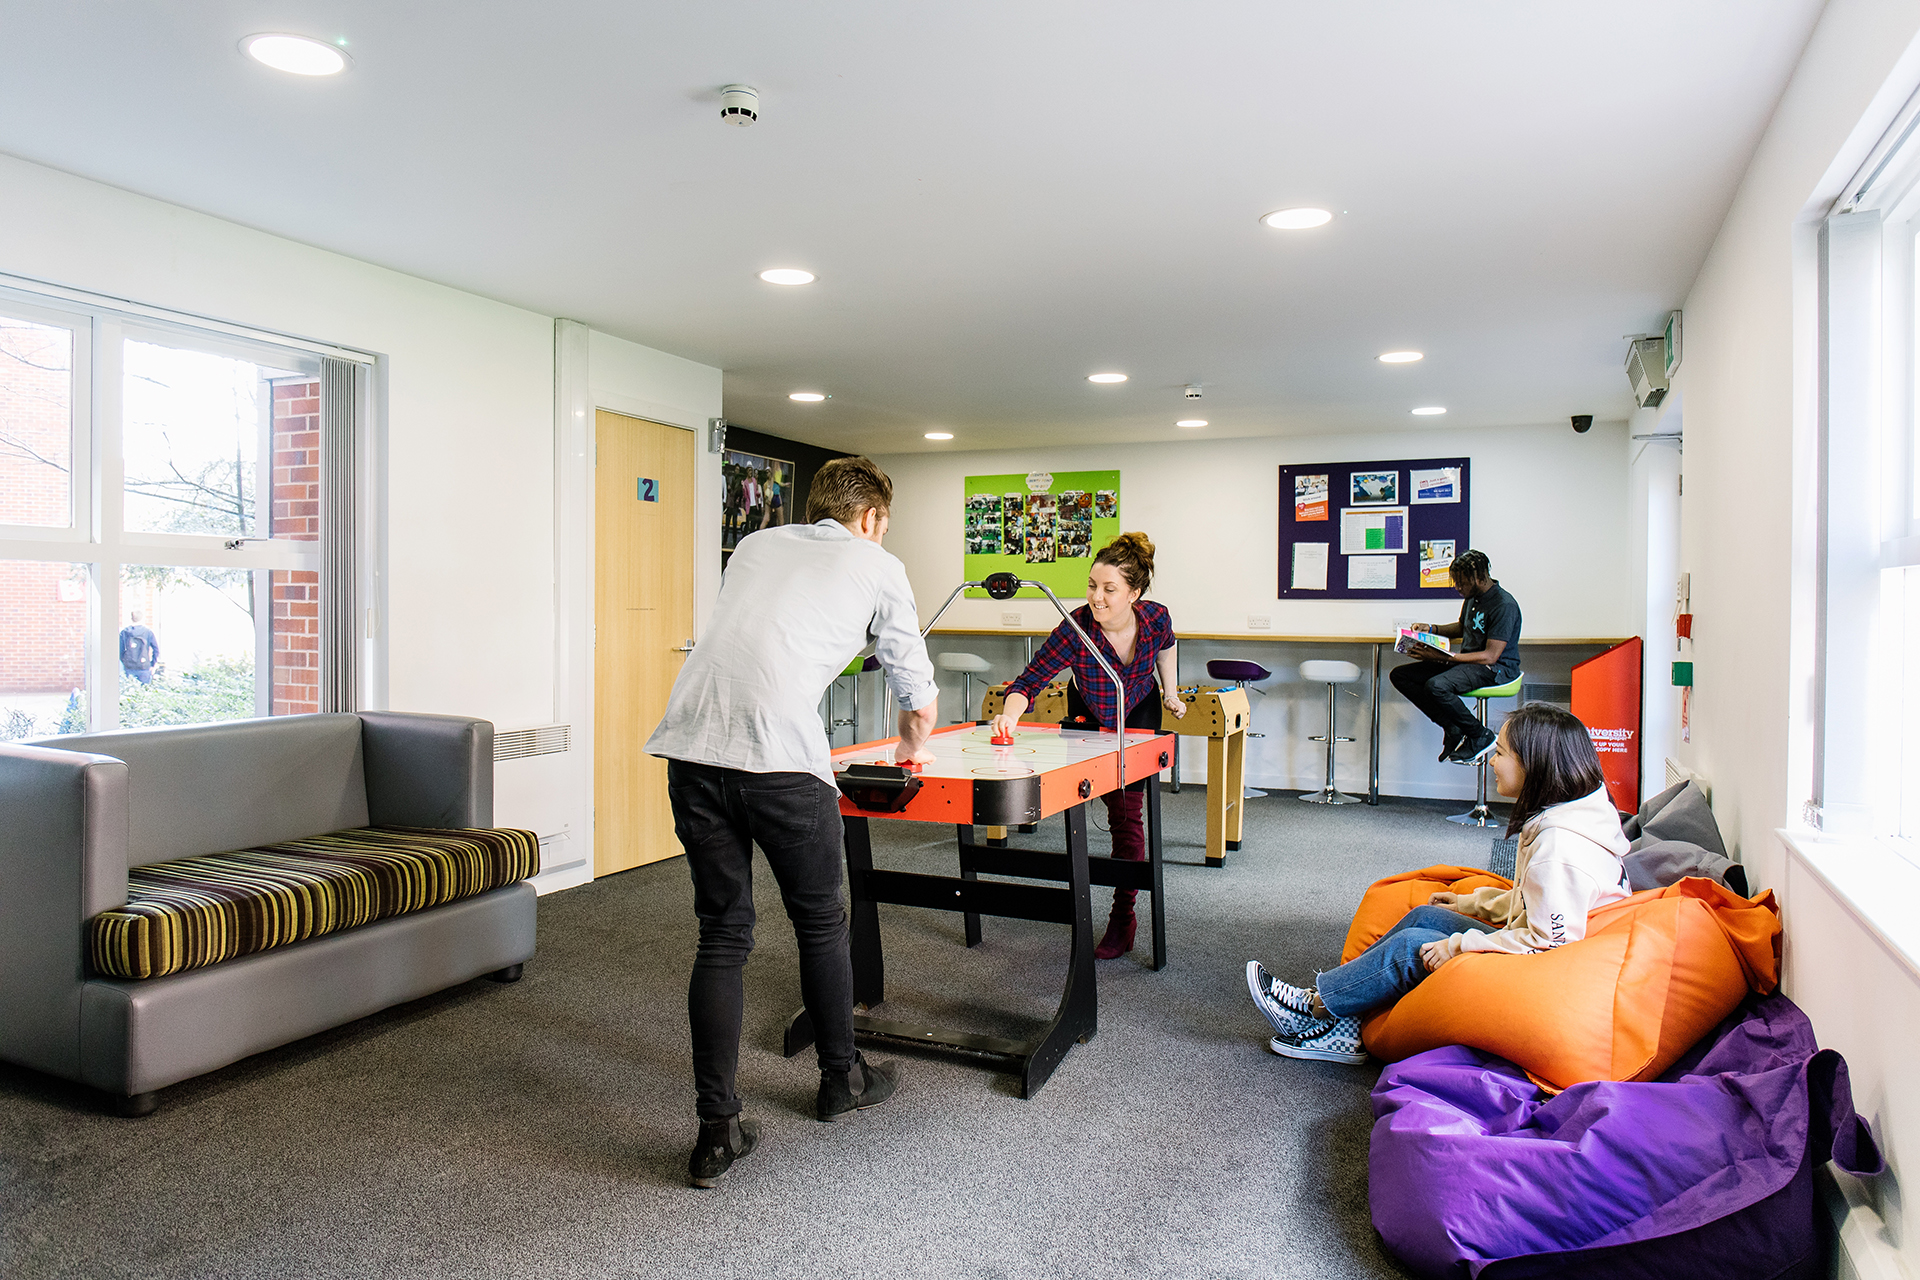 Students playing games in the social area